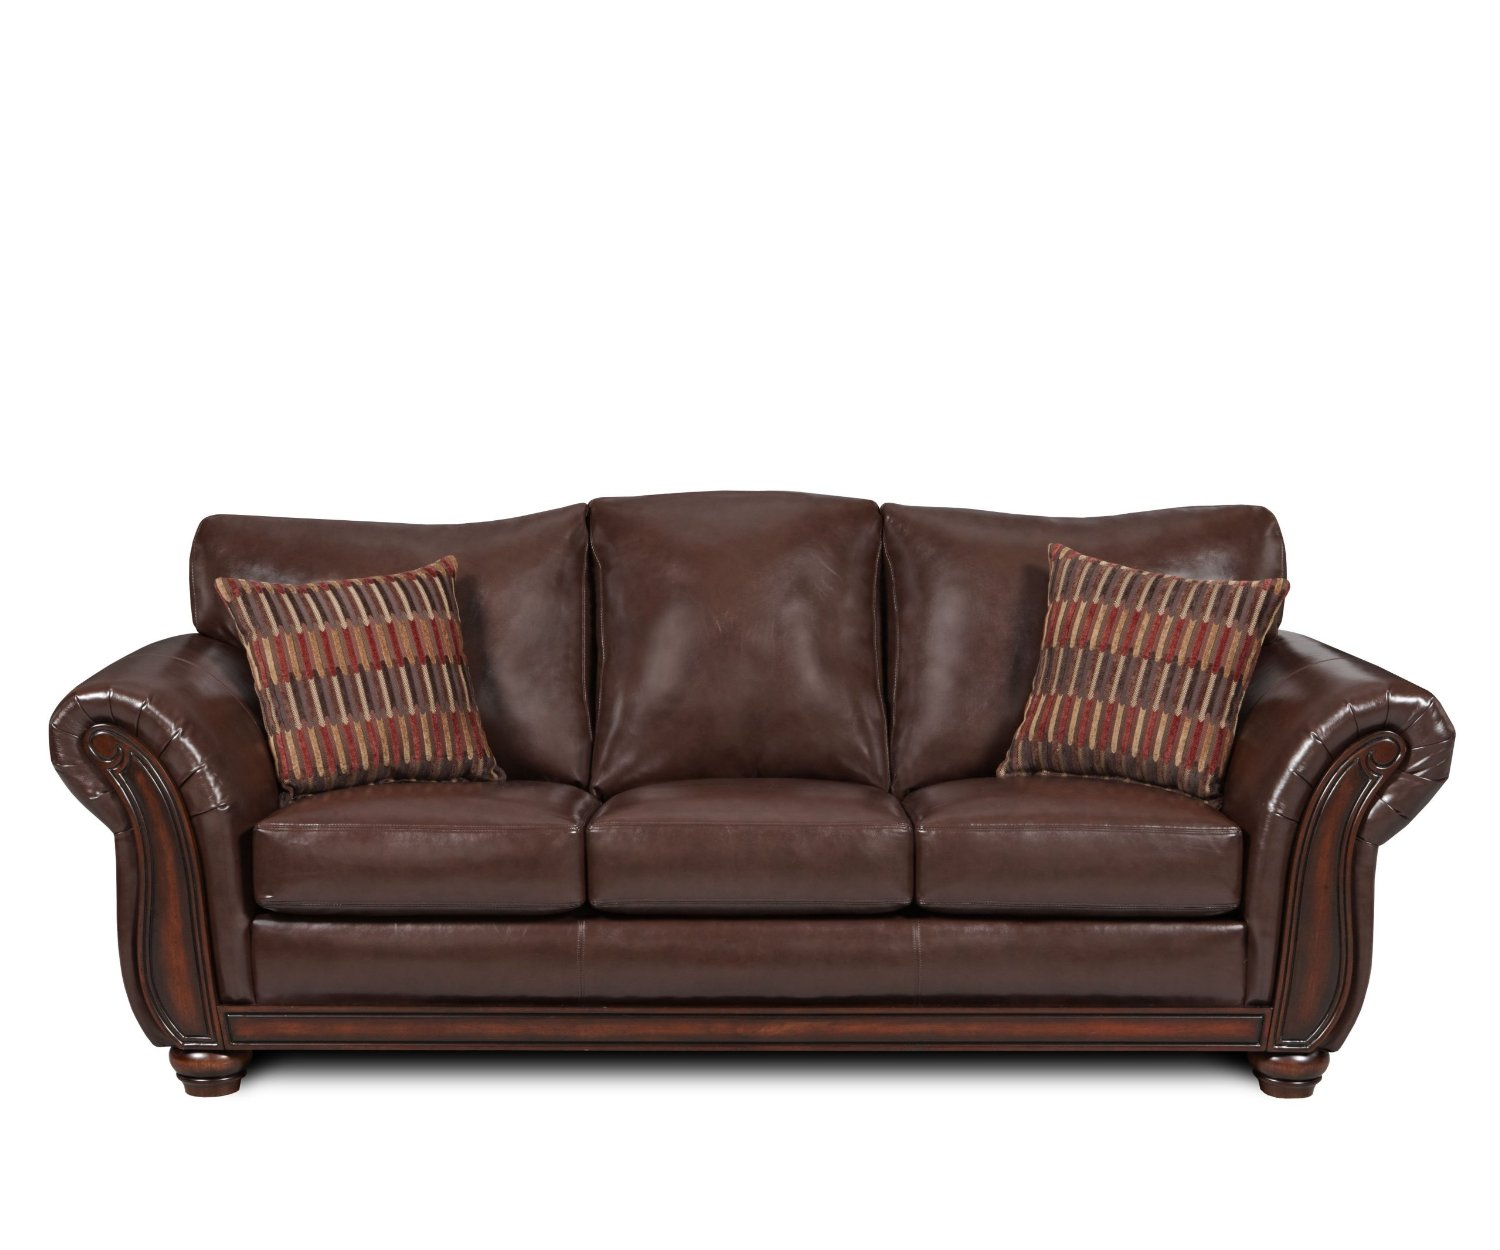 Leather Couch Furniture Guide  LeatherSofaorg